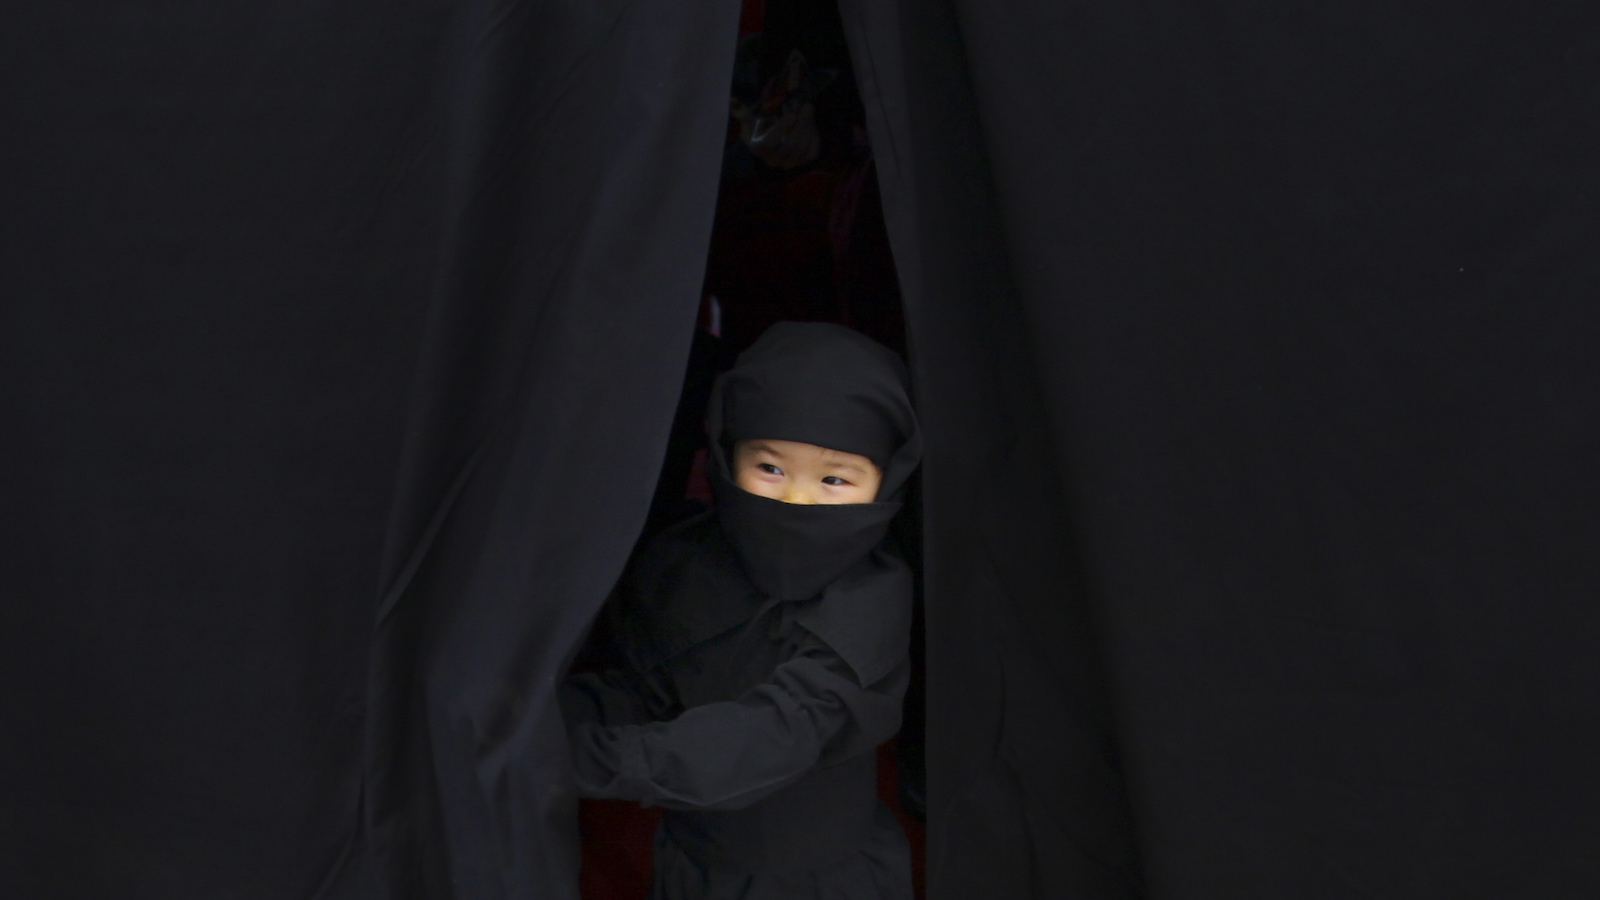 Shizuku Morita of Tokyo, 3, comes out of a dressing room with Ninja outfit at a mall during a Japan Week event in Tokyo Saturday, Feb. 5, 2011 to promote Japan's culture including tourism to Iga city, one of the places where Ninja was originated. (AP Photo/Junji Kurokawa)